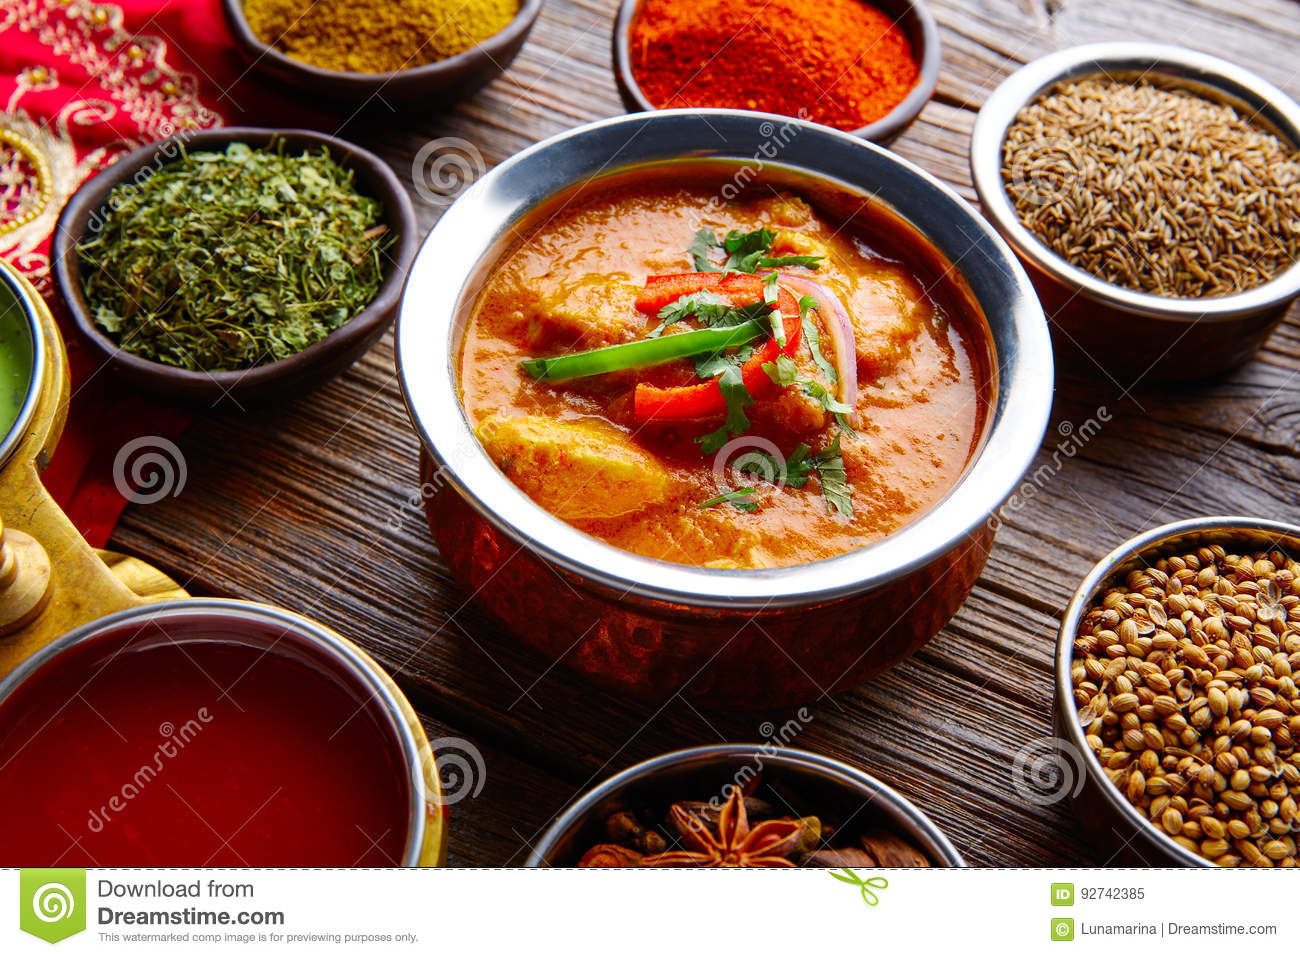 Chicken jalfrazy indian food recipe and spices stock image image royalty free stock photo download chicken jalfrazy indian food recipe and spices stock image image of paprika powder forumfinder Choice Image